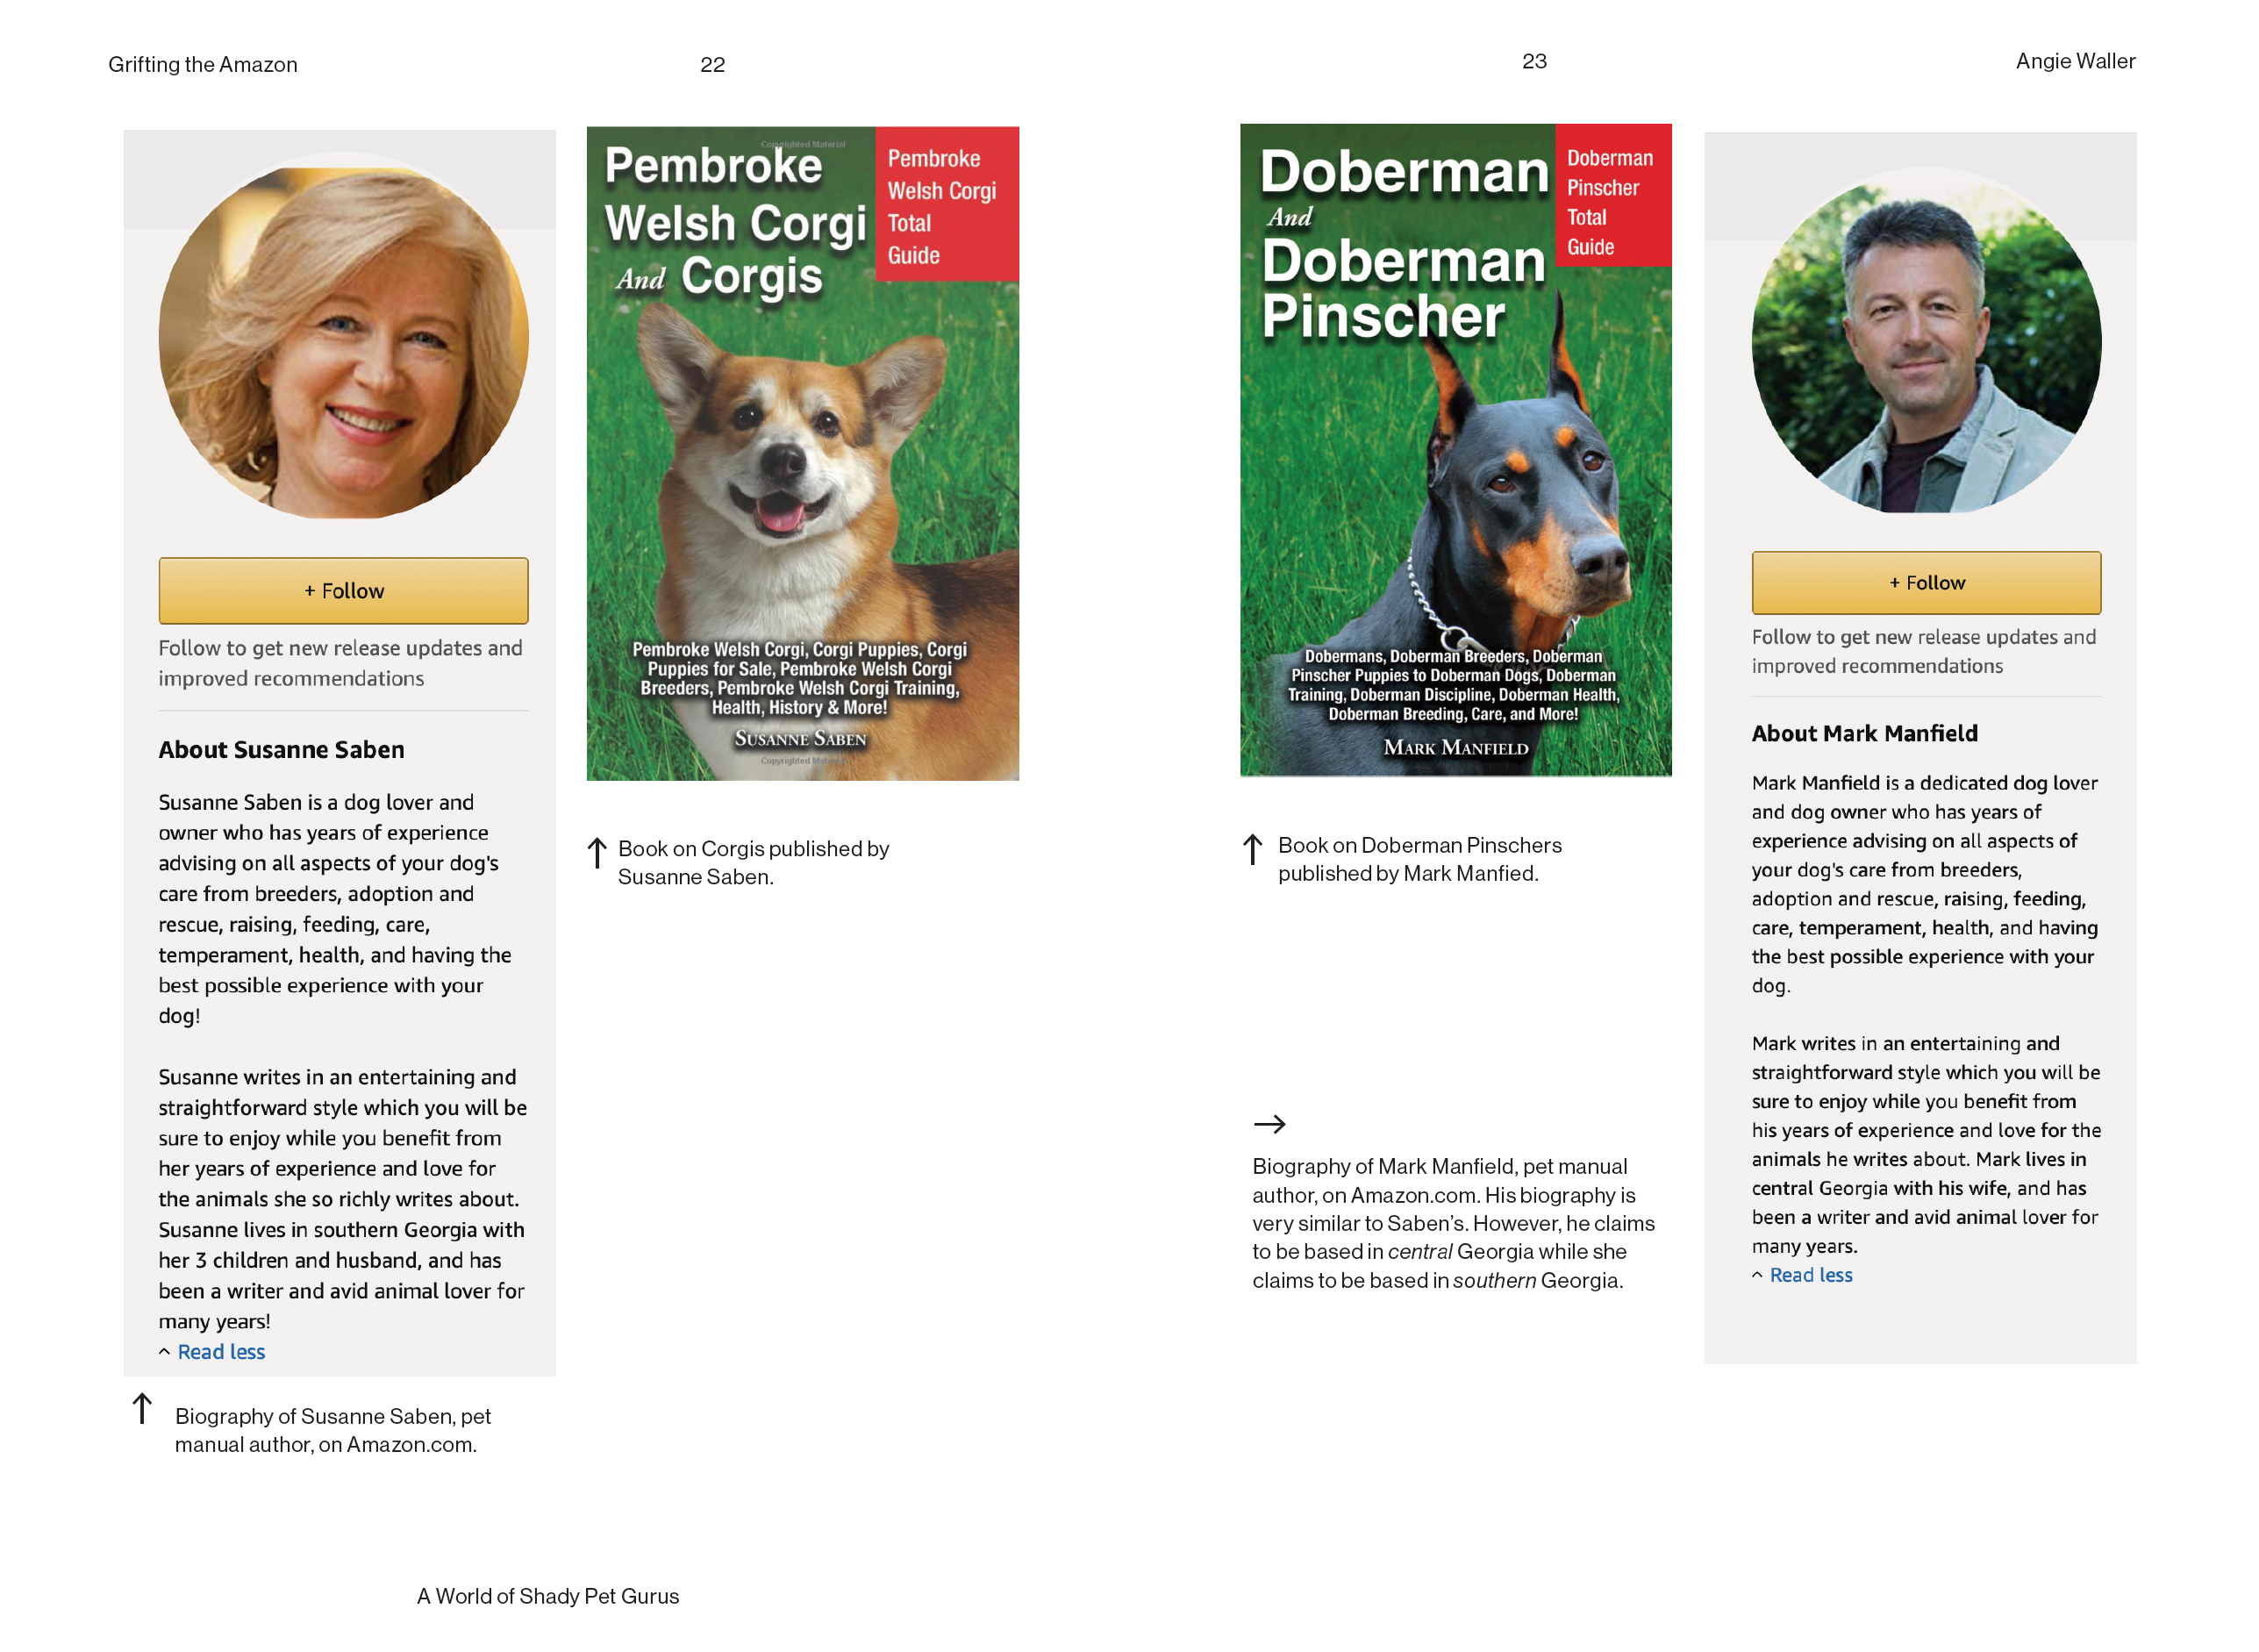 Two pet books with authors who have the same bio with the exception of a few words